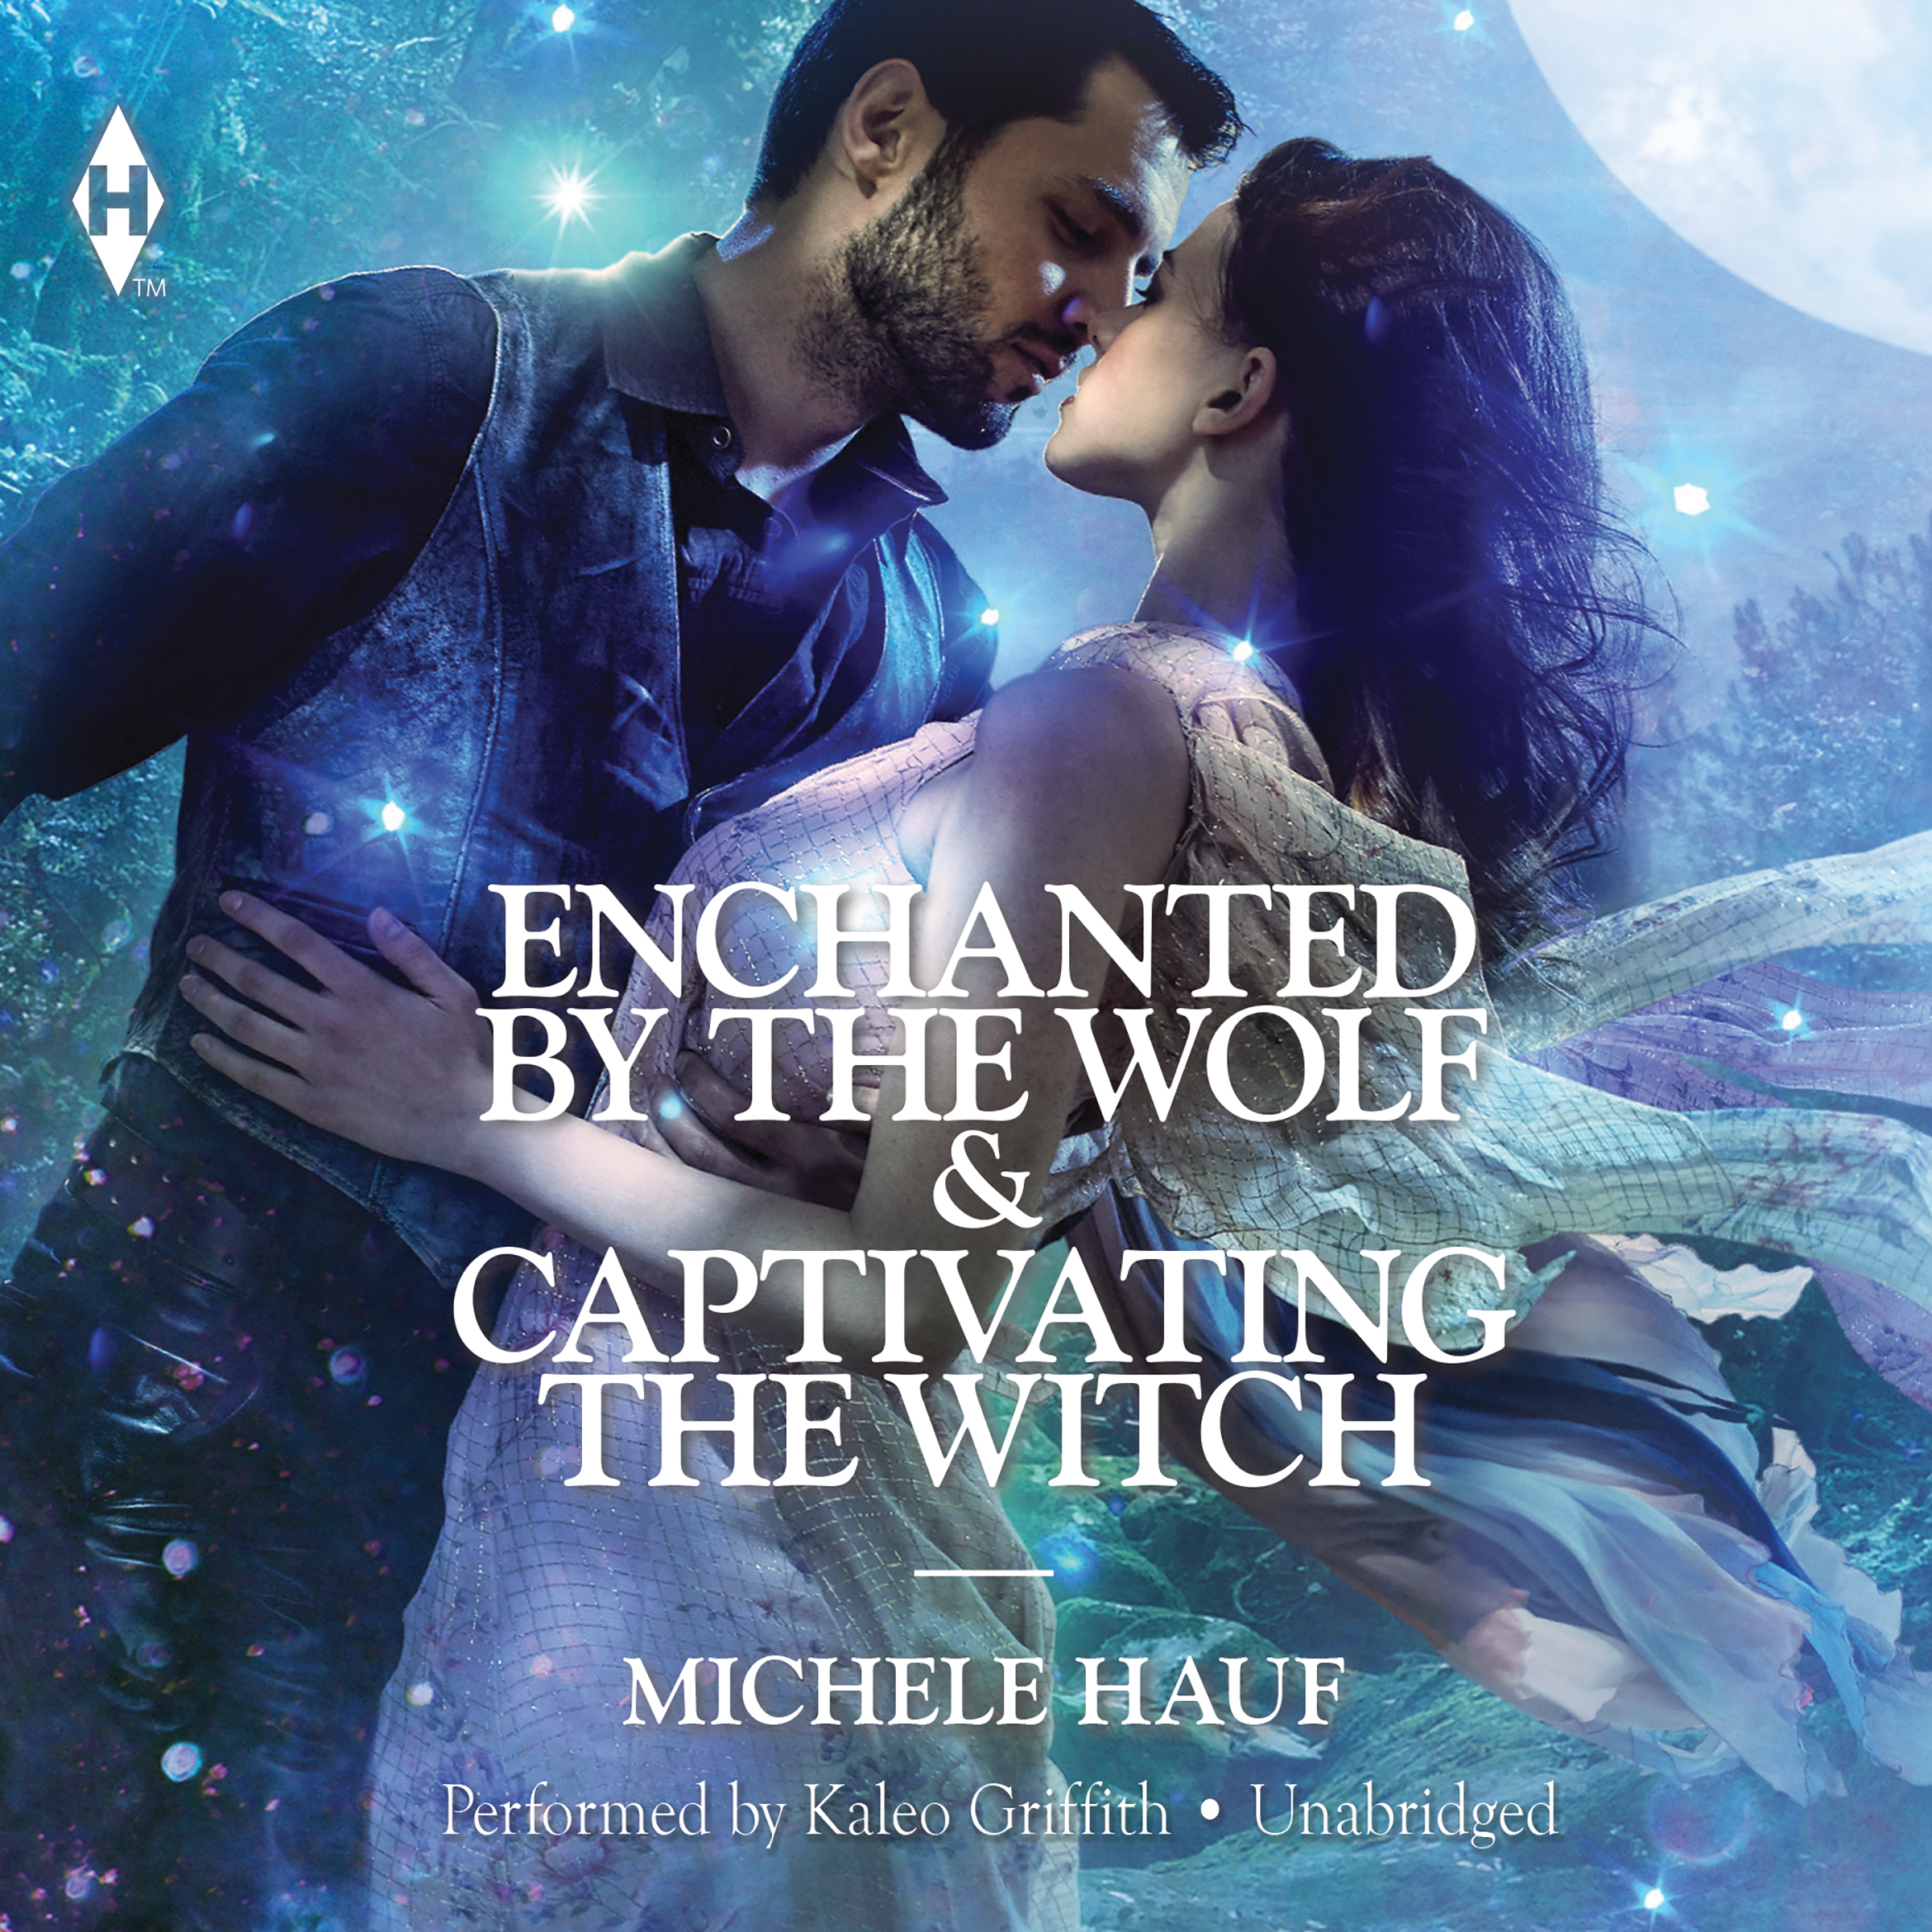 Printable Enchanted by the Wolf & Captivating the Witch  Audiobook Cover Art